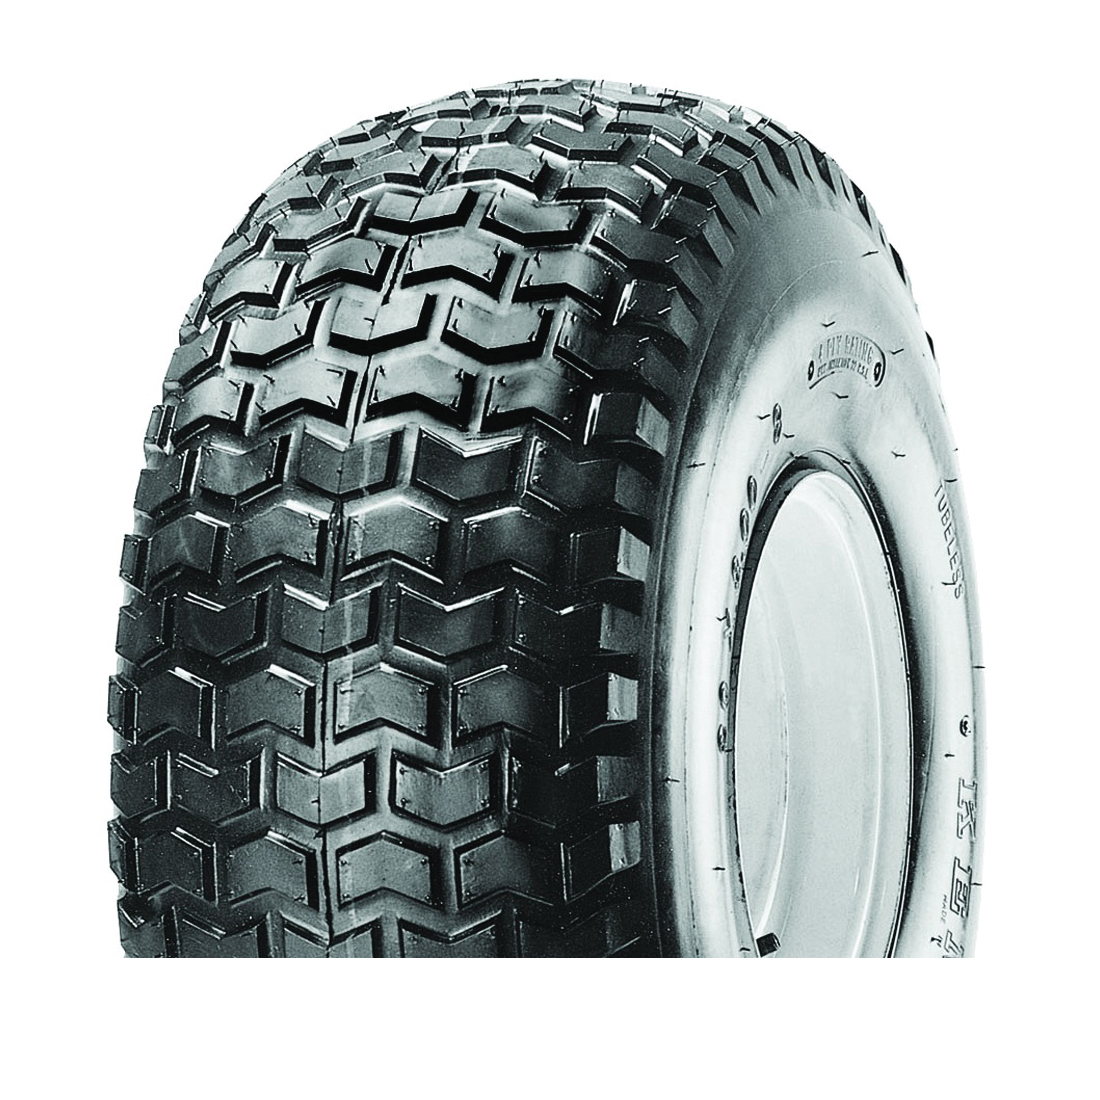 Picture of MARTIN WHEEL 808-2TR-I Turf Rider Tire, Tubeless, For: 8 x 7 in Rim Lawnmowers and Tractors